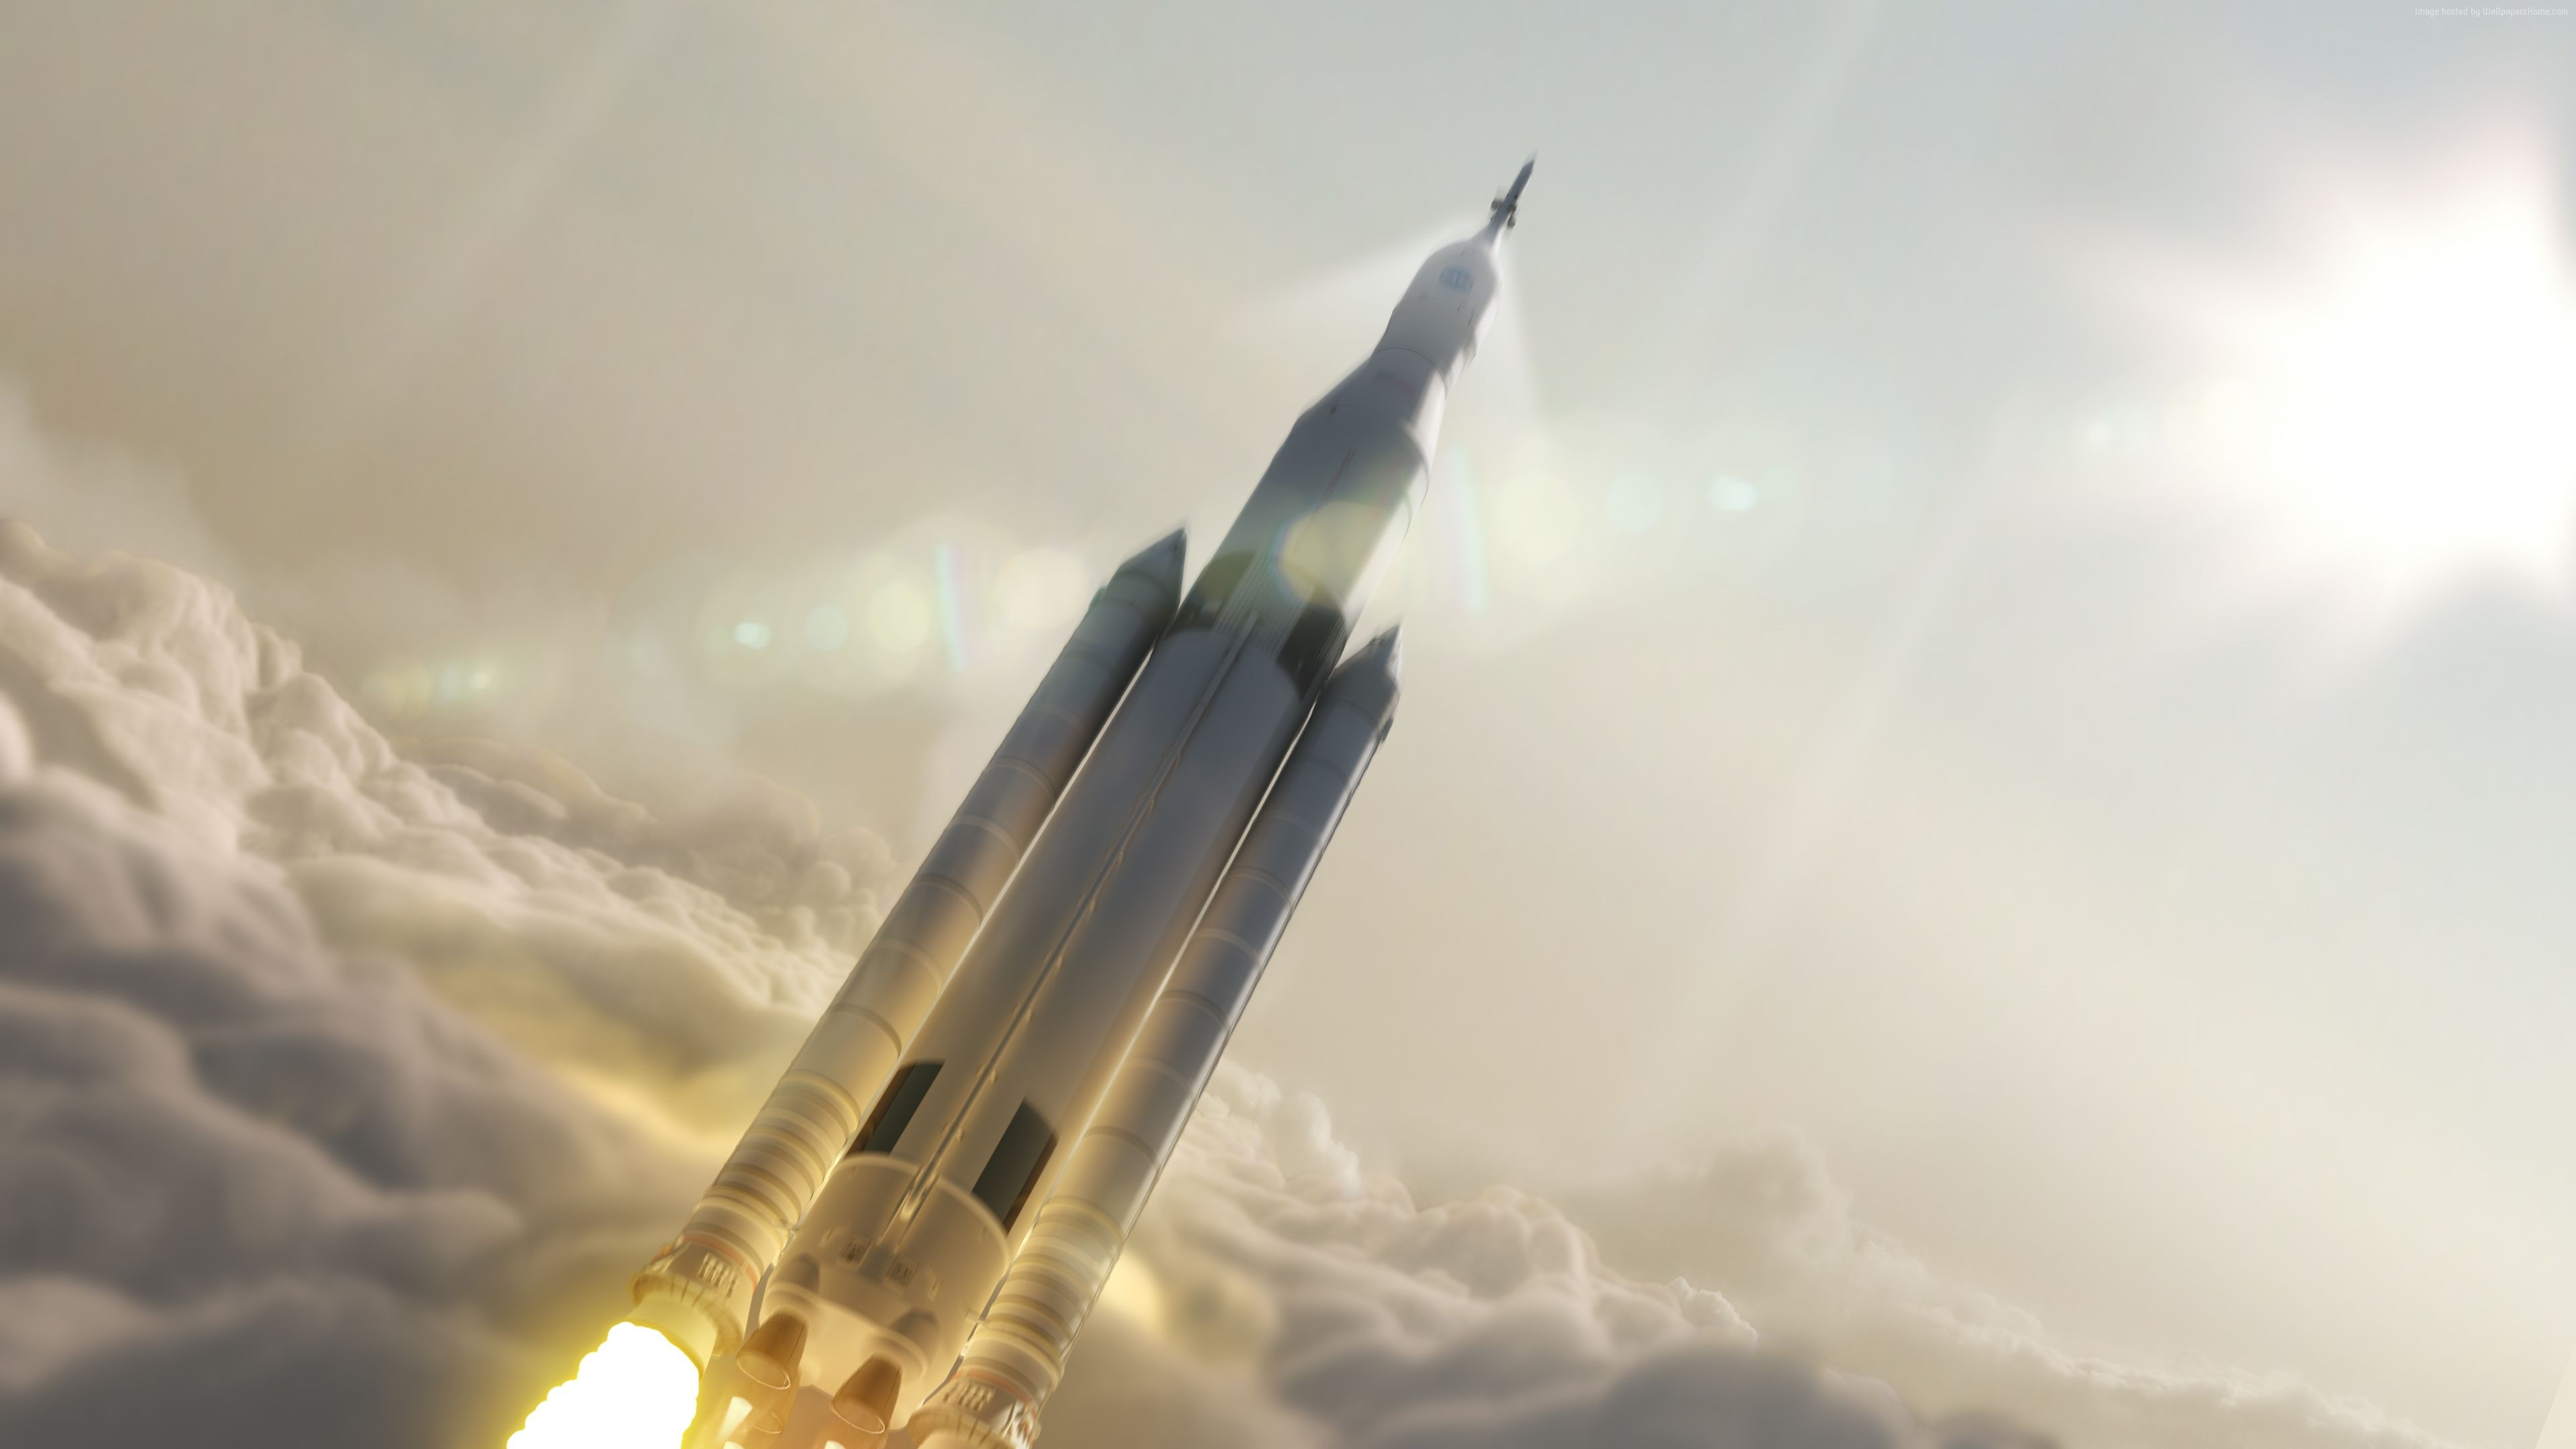 Wallpaper SpaceX, Falcon Heavy, ship, rocket, mars, mission, Space